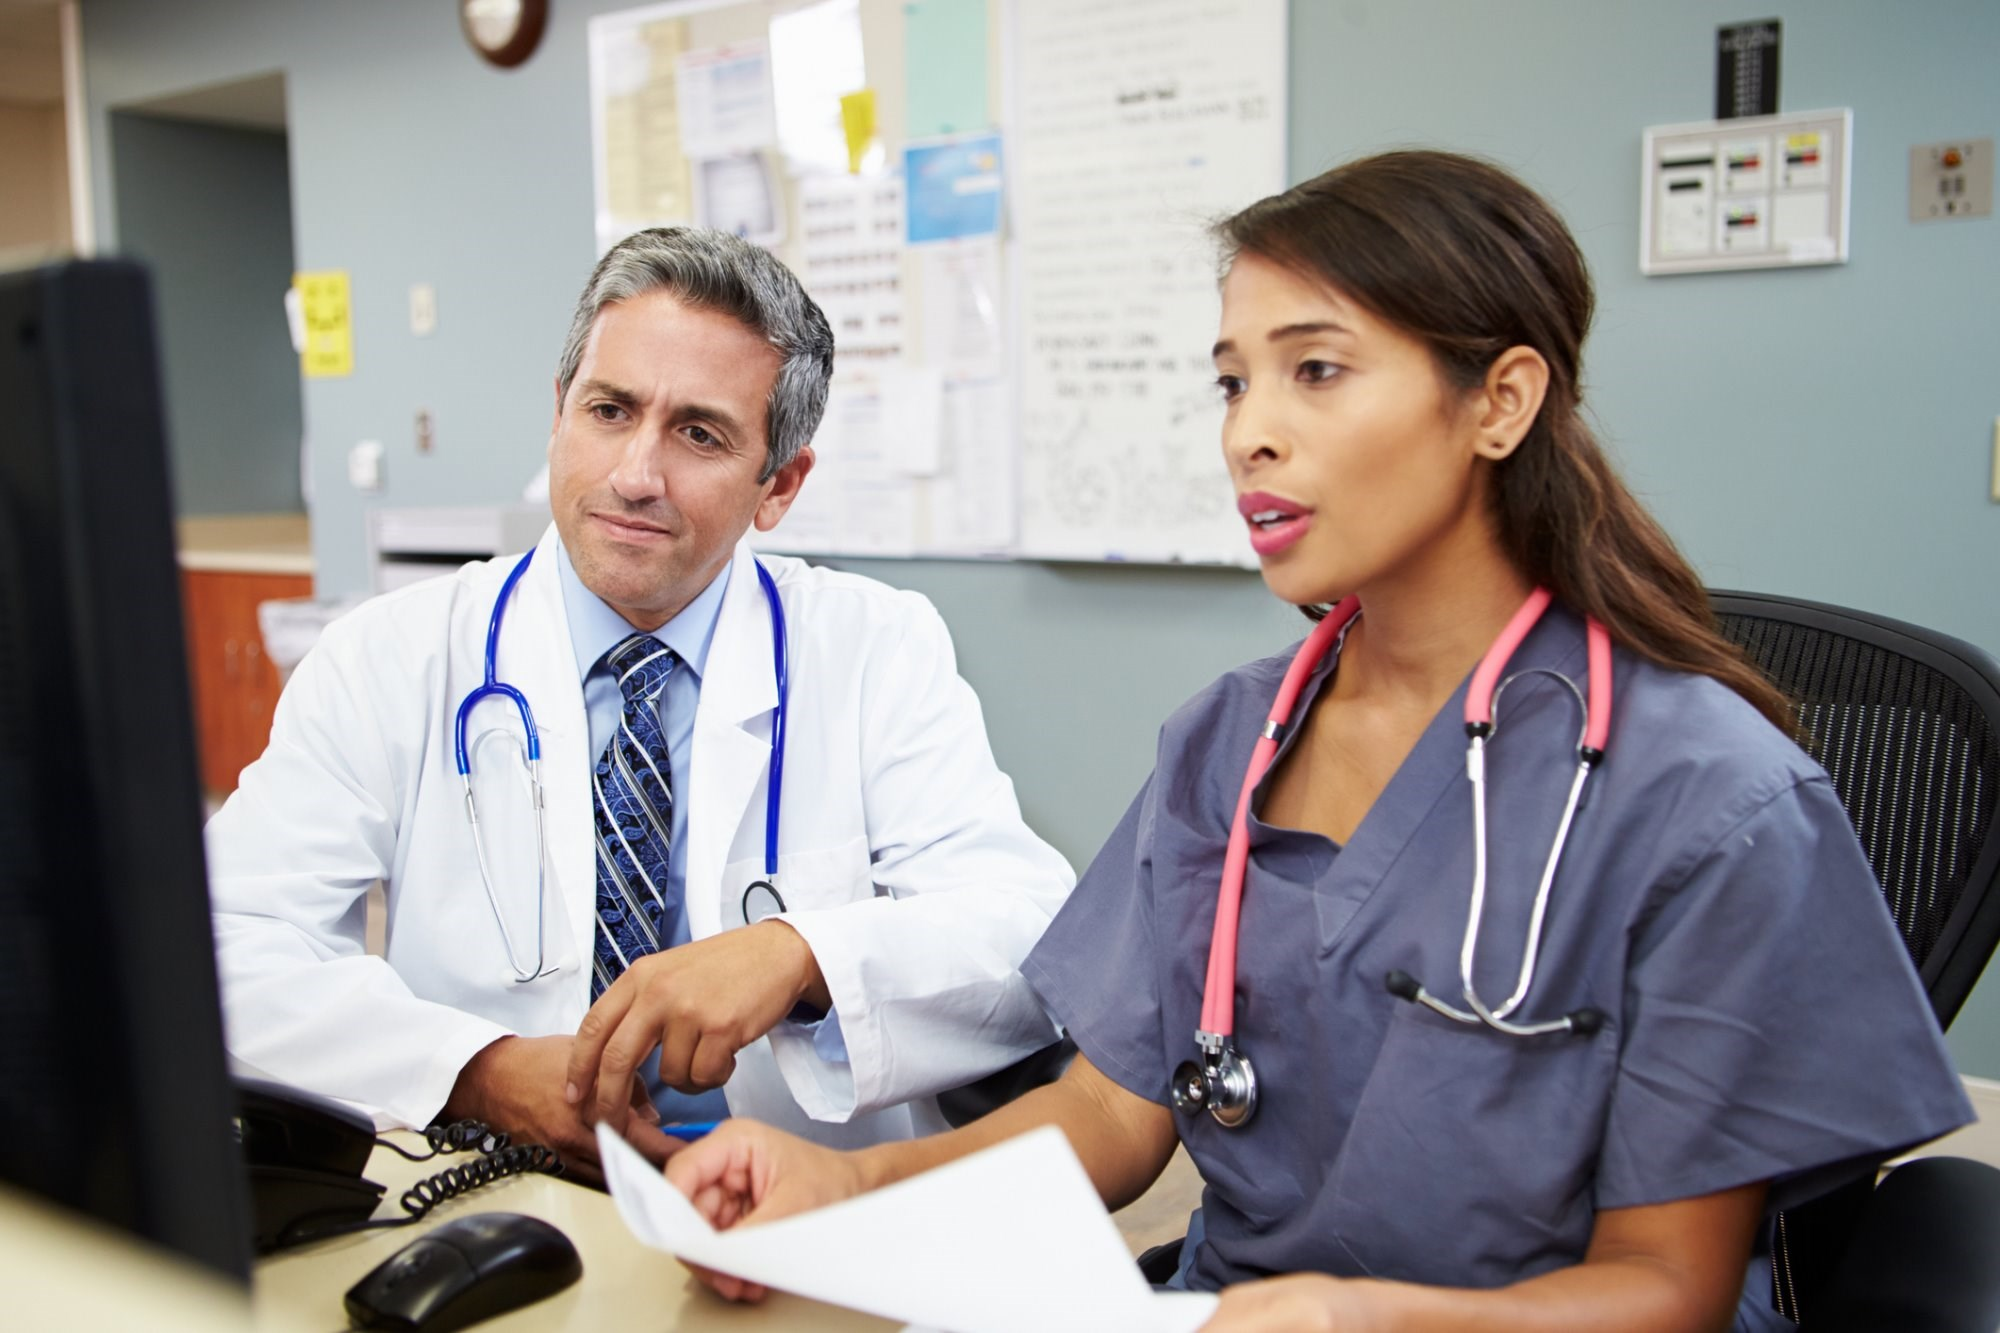 Many providers still find EMRs vexing, even after all these years.